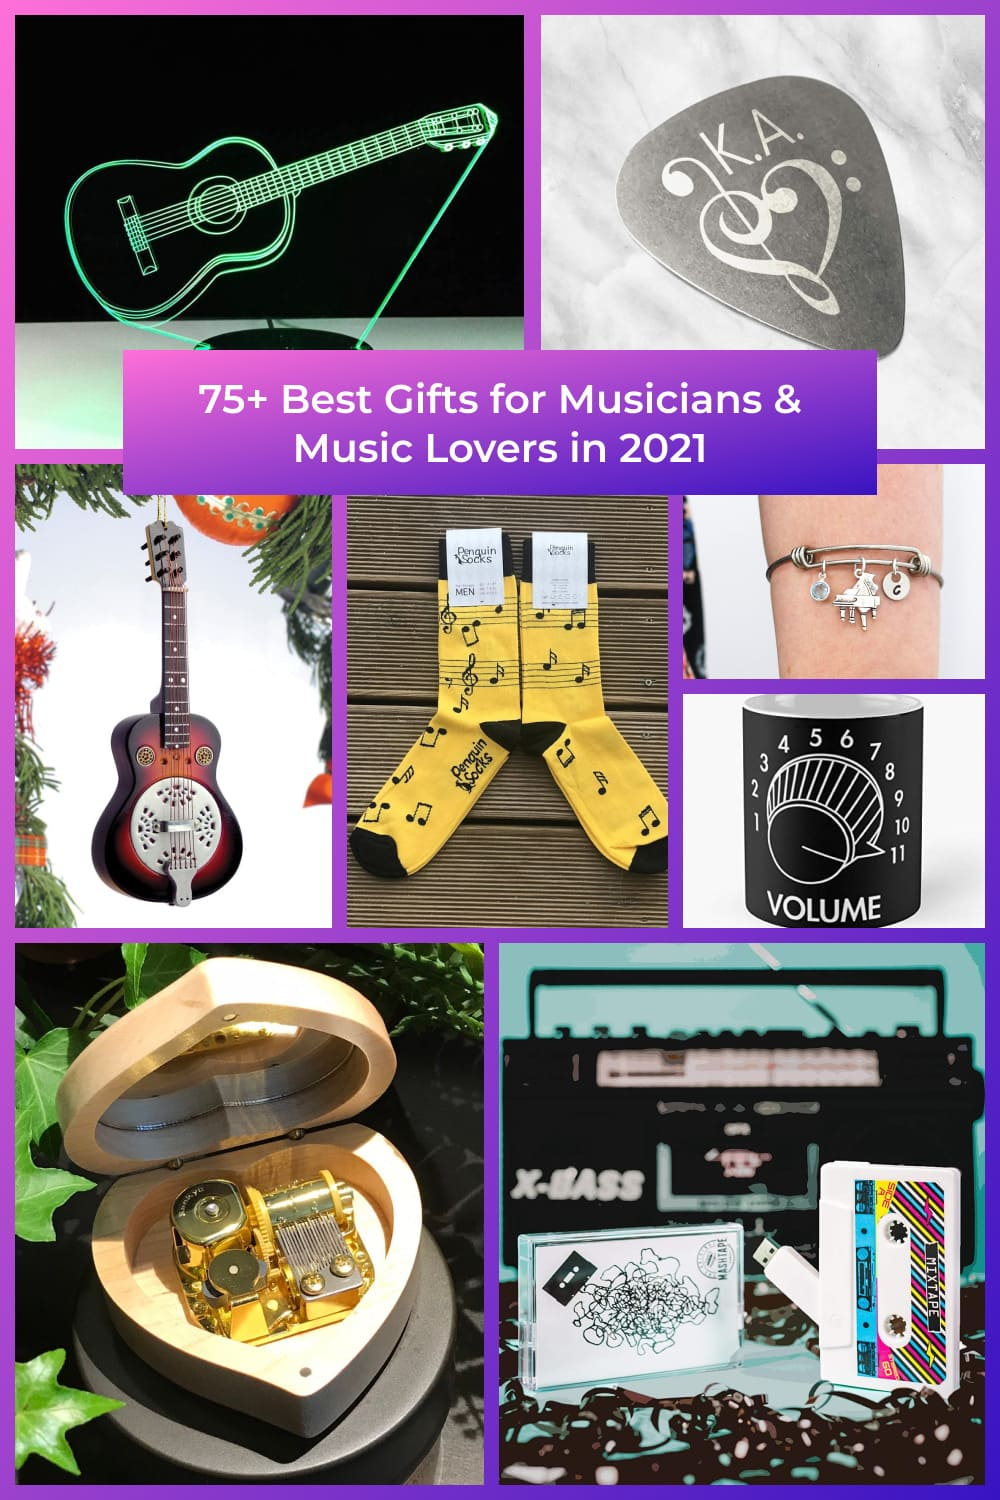 Best Gifts for Musicians & Music Lovers Pinterest.